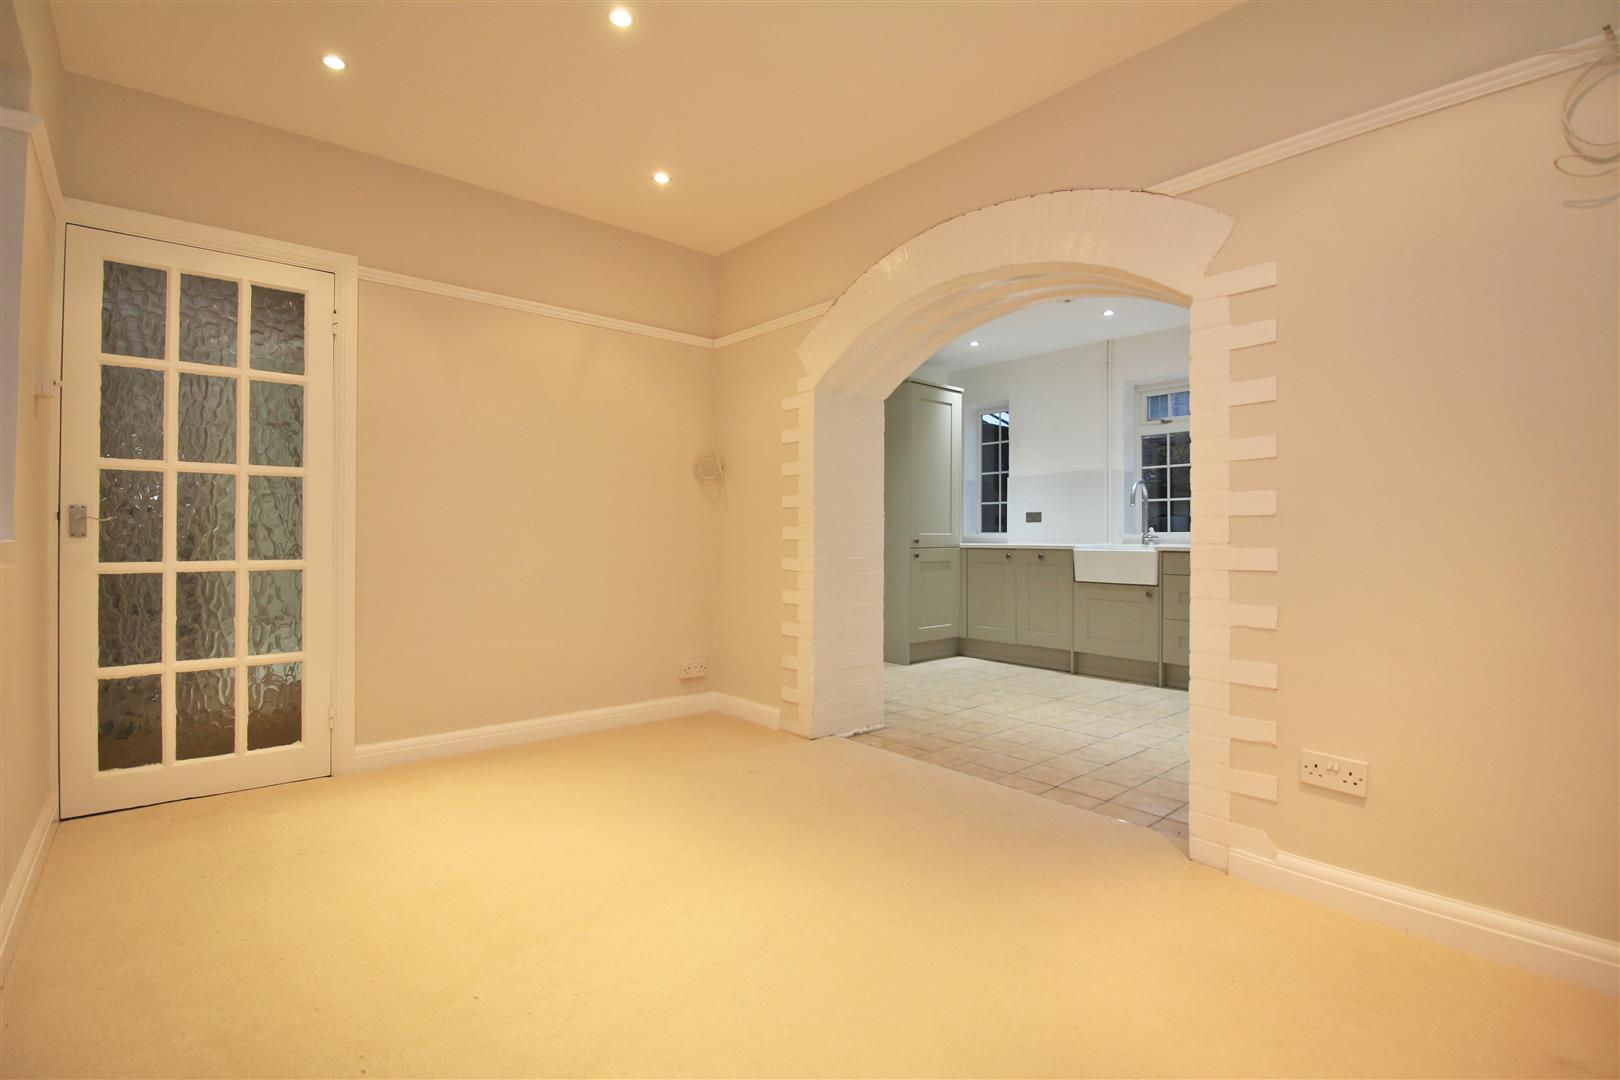 3 bed to rent in Church Lane - (Property Image 4)